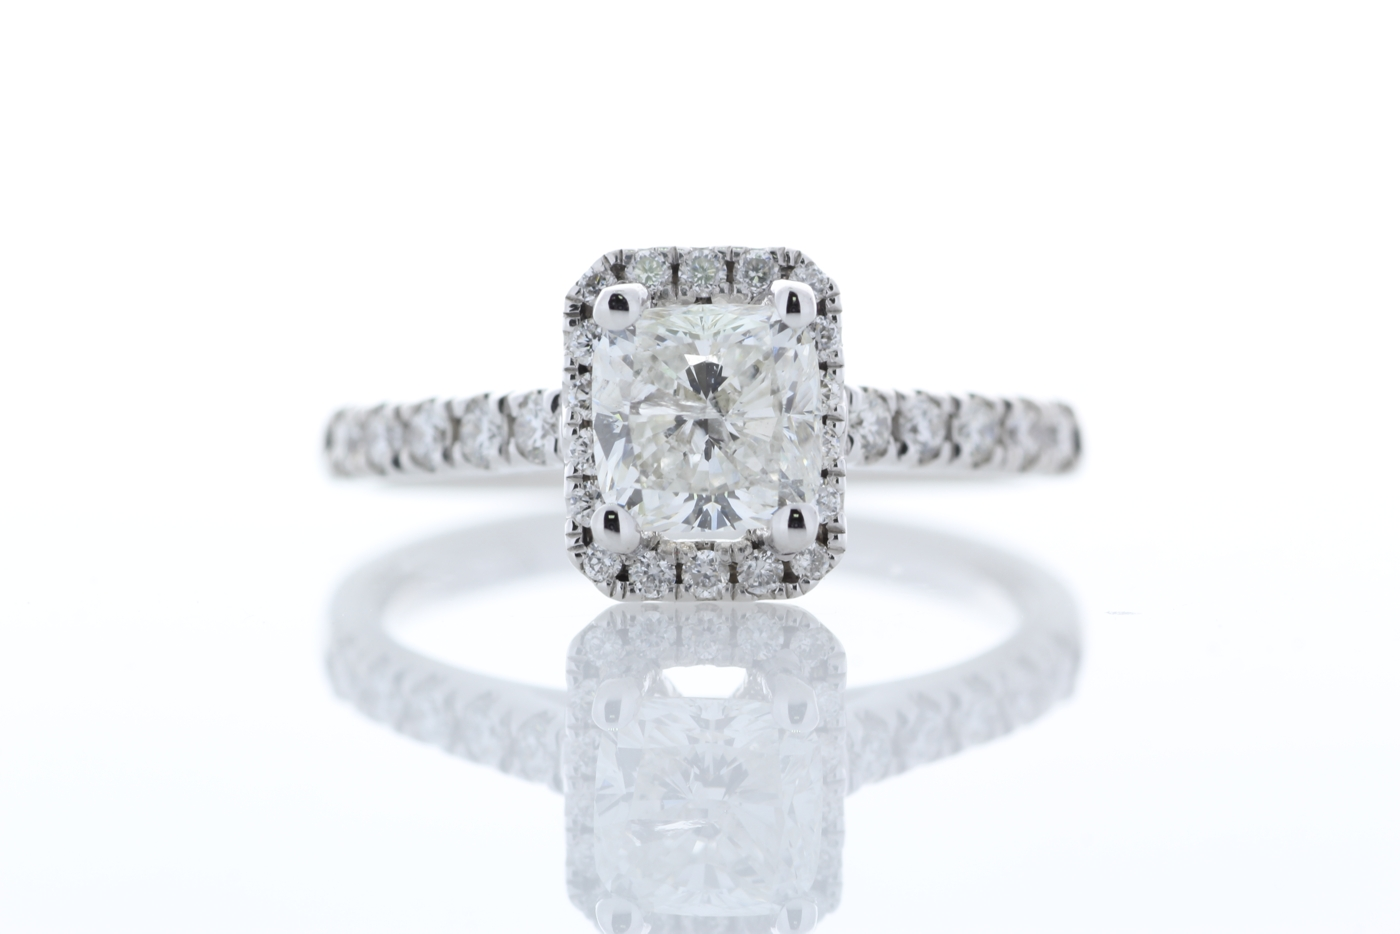 Lot 34 - 18k White Gold Single Stone Radiant Cut  With Halo Stone Set Shoulders Diamond Ring (1.01) 1.32